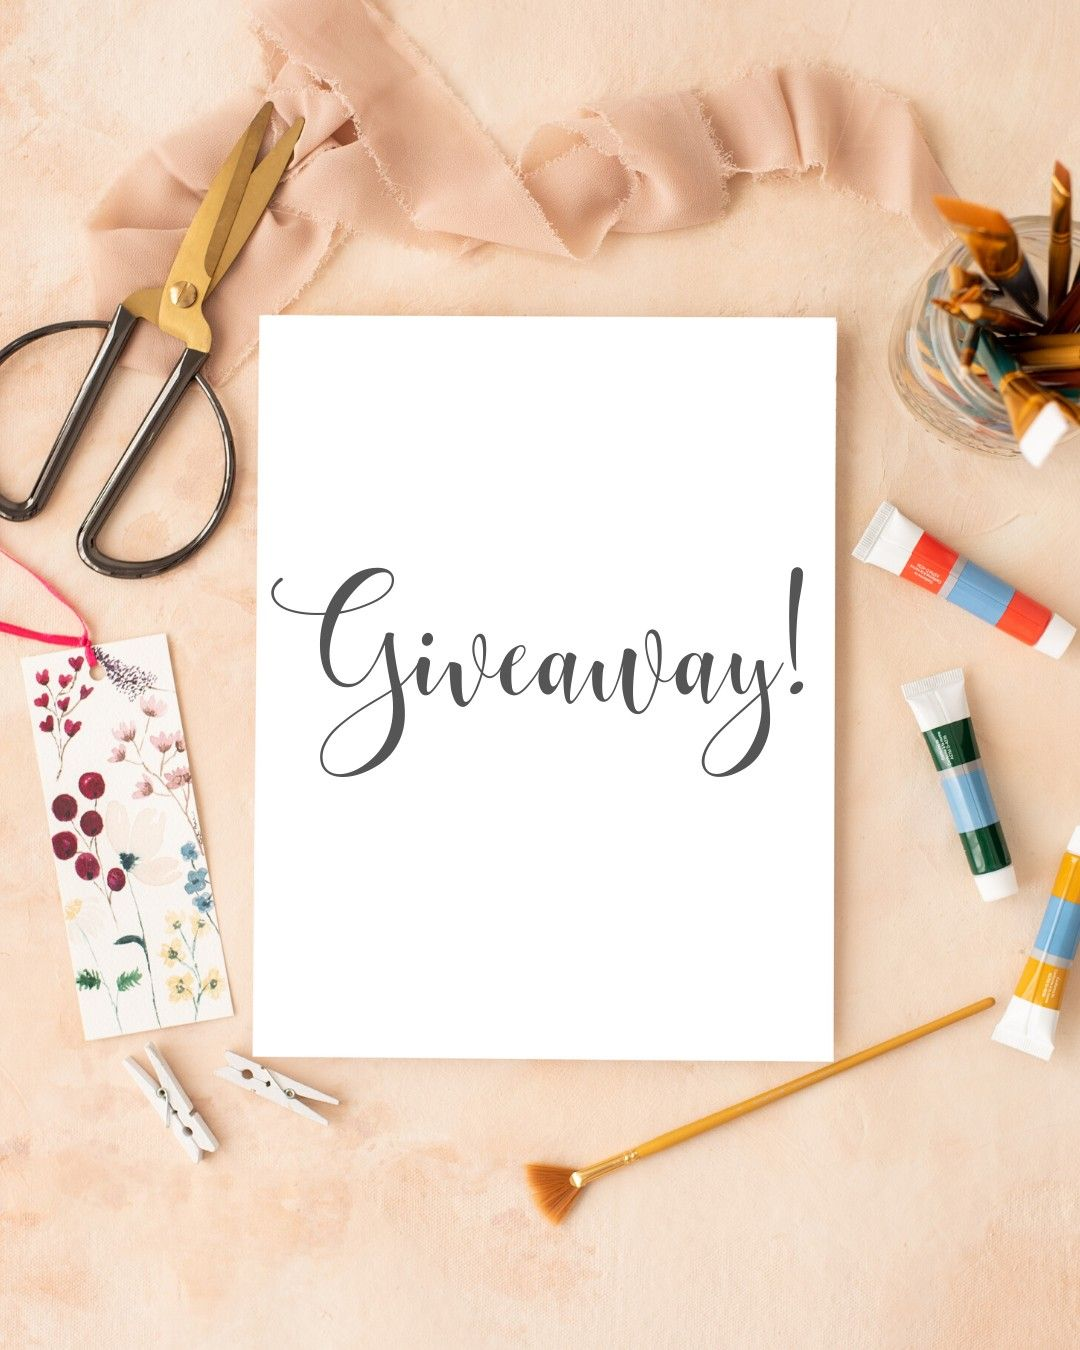 Giveaway For May I M Giving Away A 12 Month Vip Membership To 1 Winner I Ll Be Announcing The Wi In 2020 Instagram Business Visual Content Place Card Holders